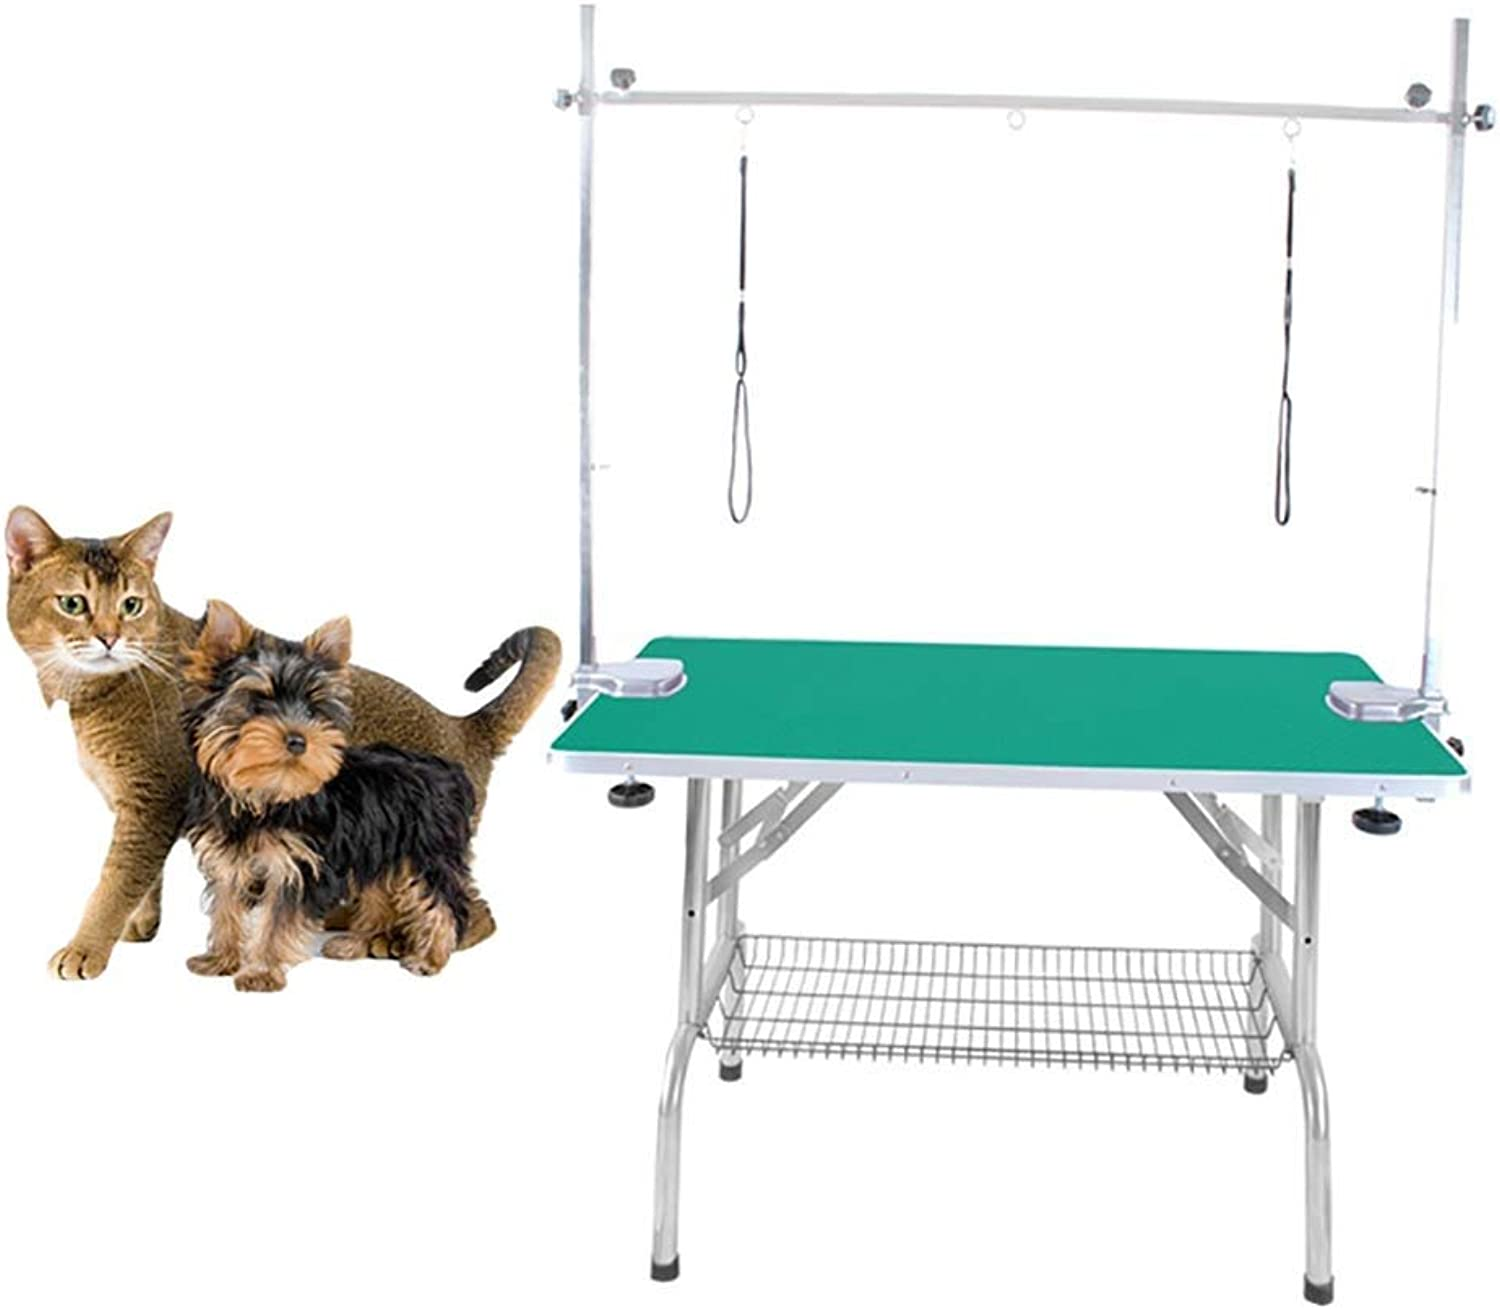 MC.PIG Dog Grooming Table Large Folding Pet Dog Grooming Table Arm & Noose & Shelf HeavyDuty 100KG Capacity Stainless Steel Dog Cat Grooming Table (color   Green)